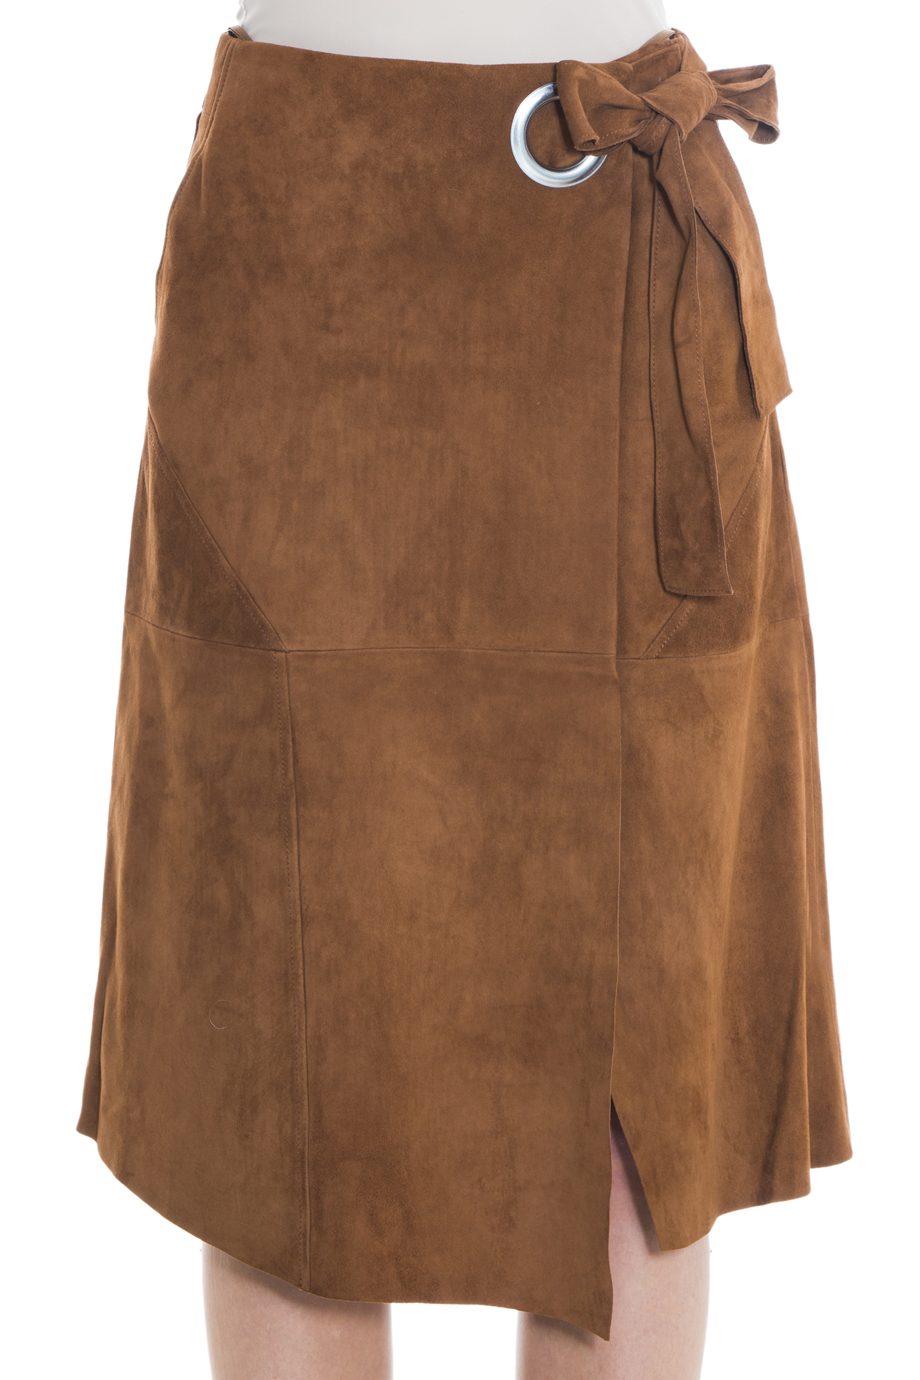 Tibi Suede Wrap Skirt in Brown | Lyst